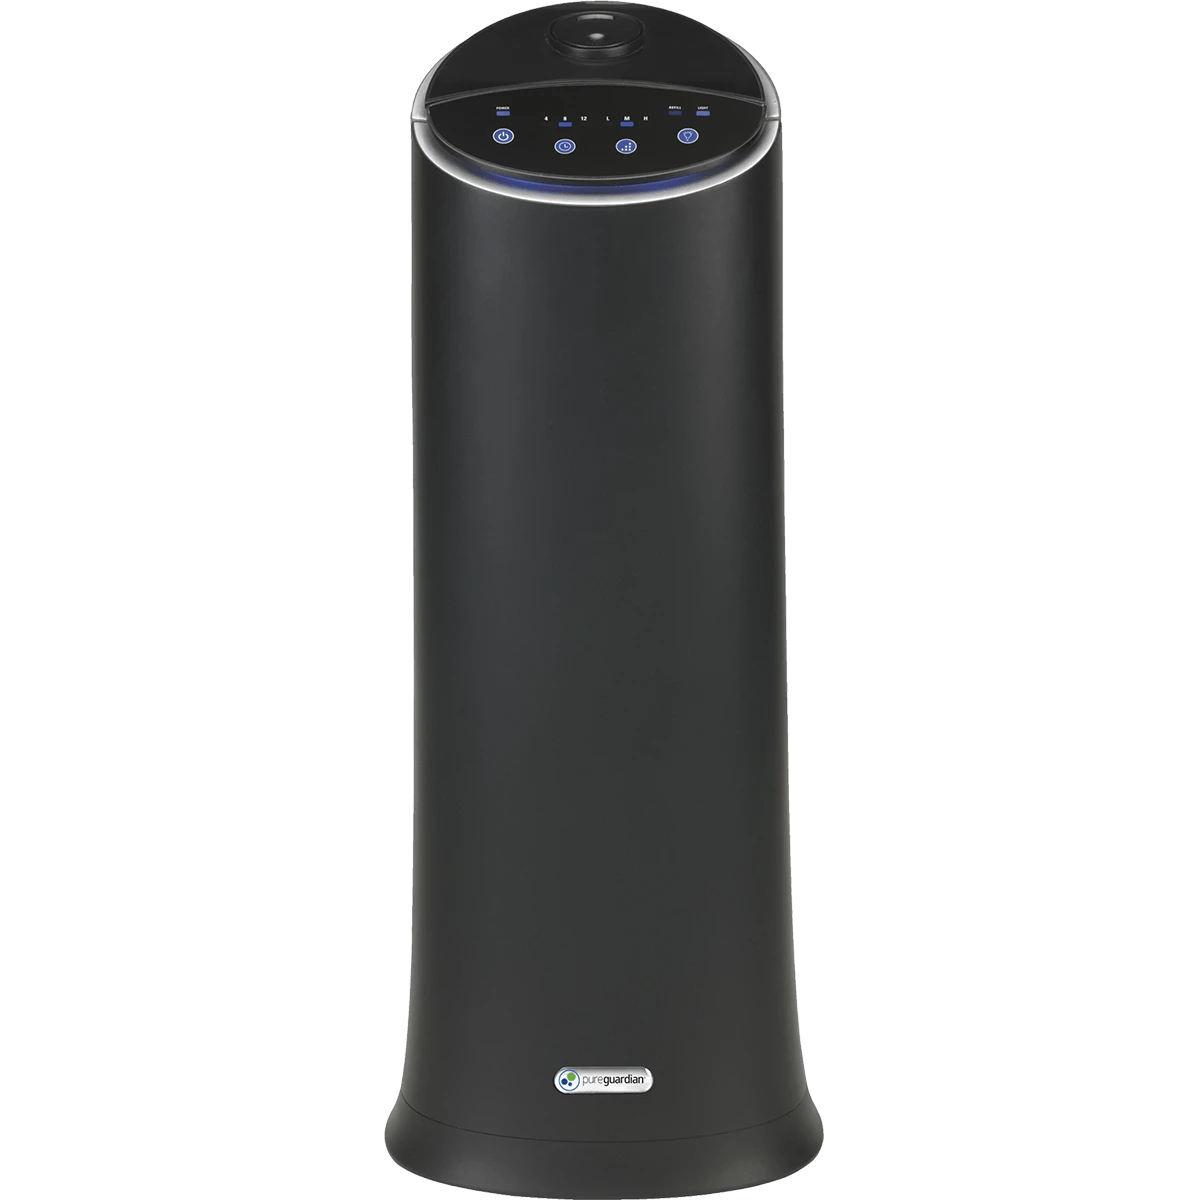 hight resolution of pureguardian 100 hour ultrasonic tower humidifier black front